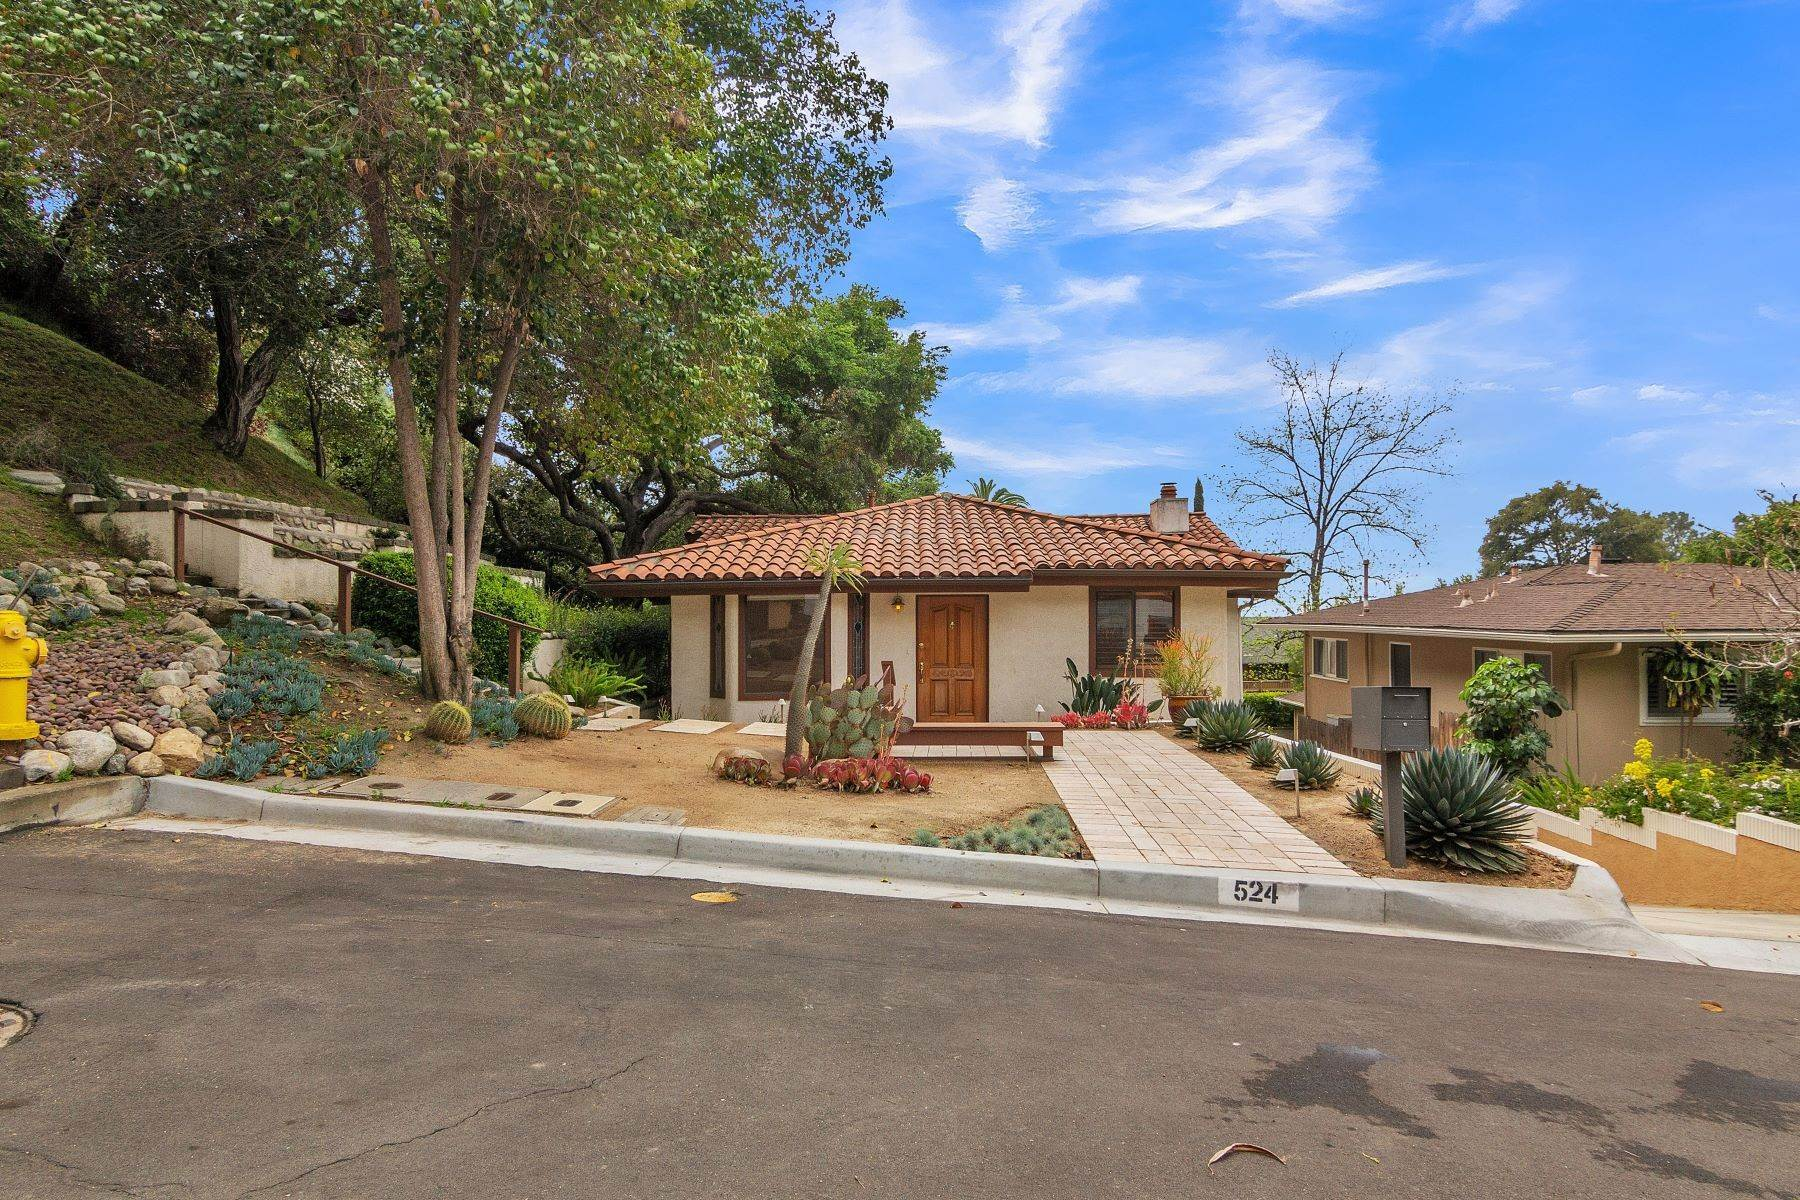 Single Family Homes for Sale at Desirable Monrovia Home In The Foothills 524 Franklin Place Monrovia, California 91016 United States